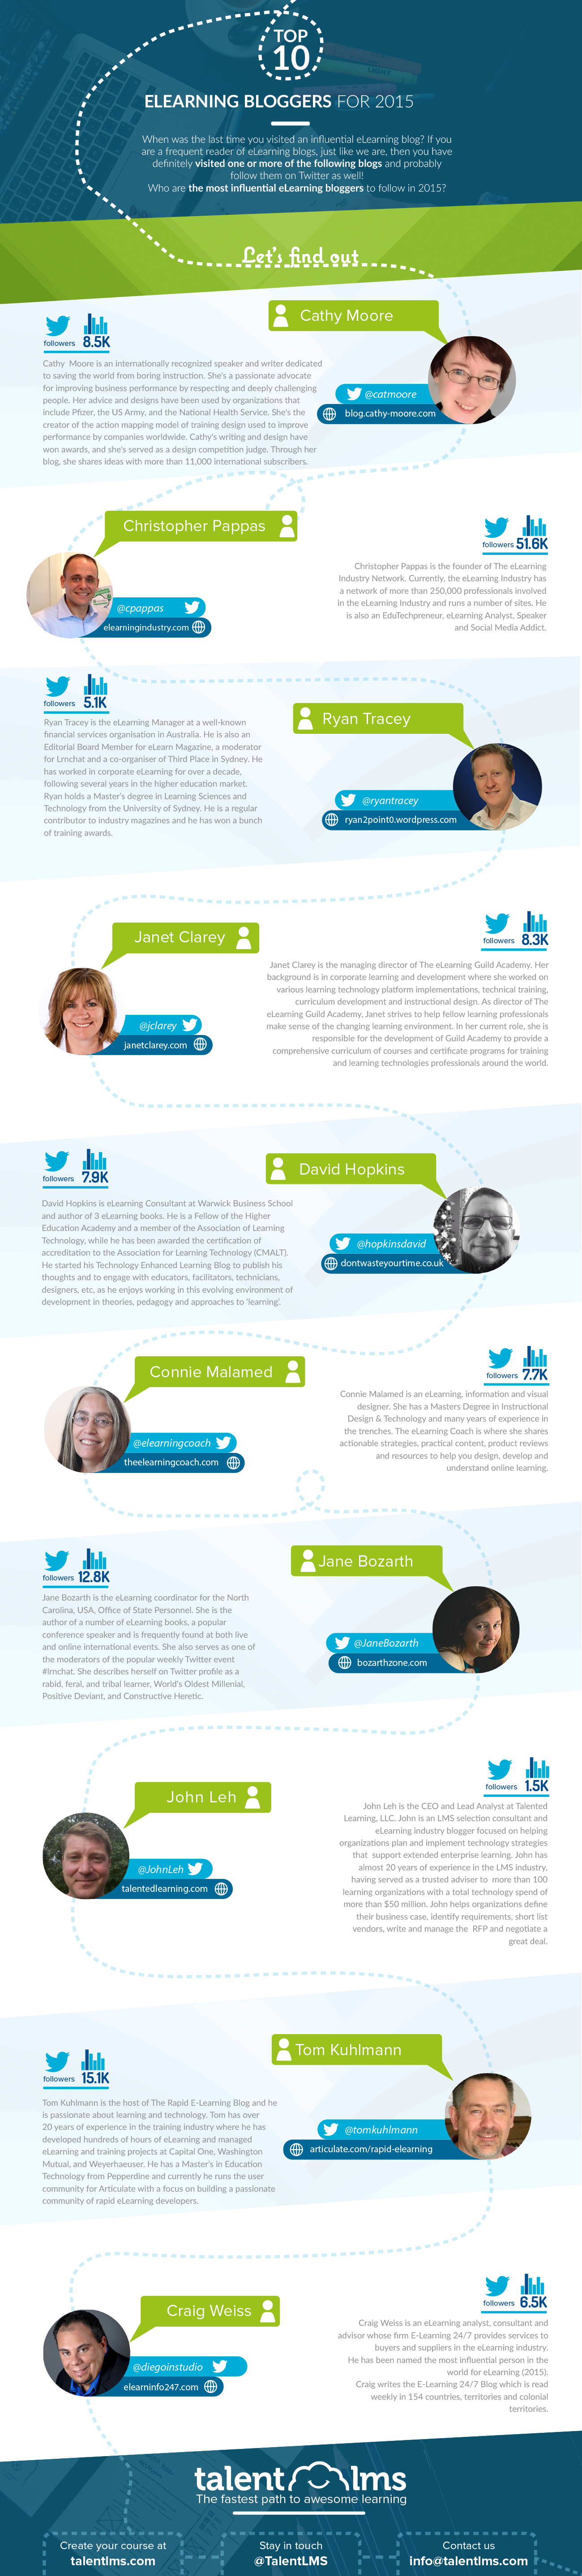 top-10-elearning-influencers-infographic